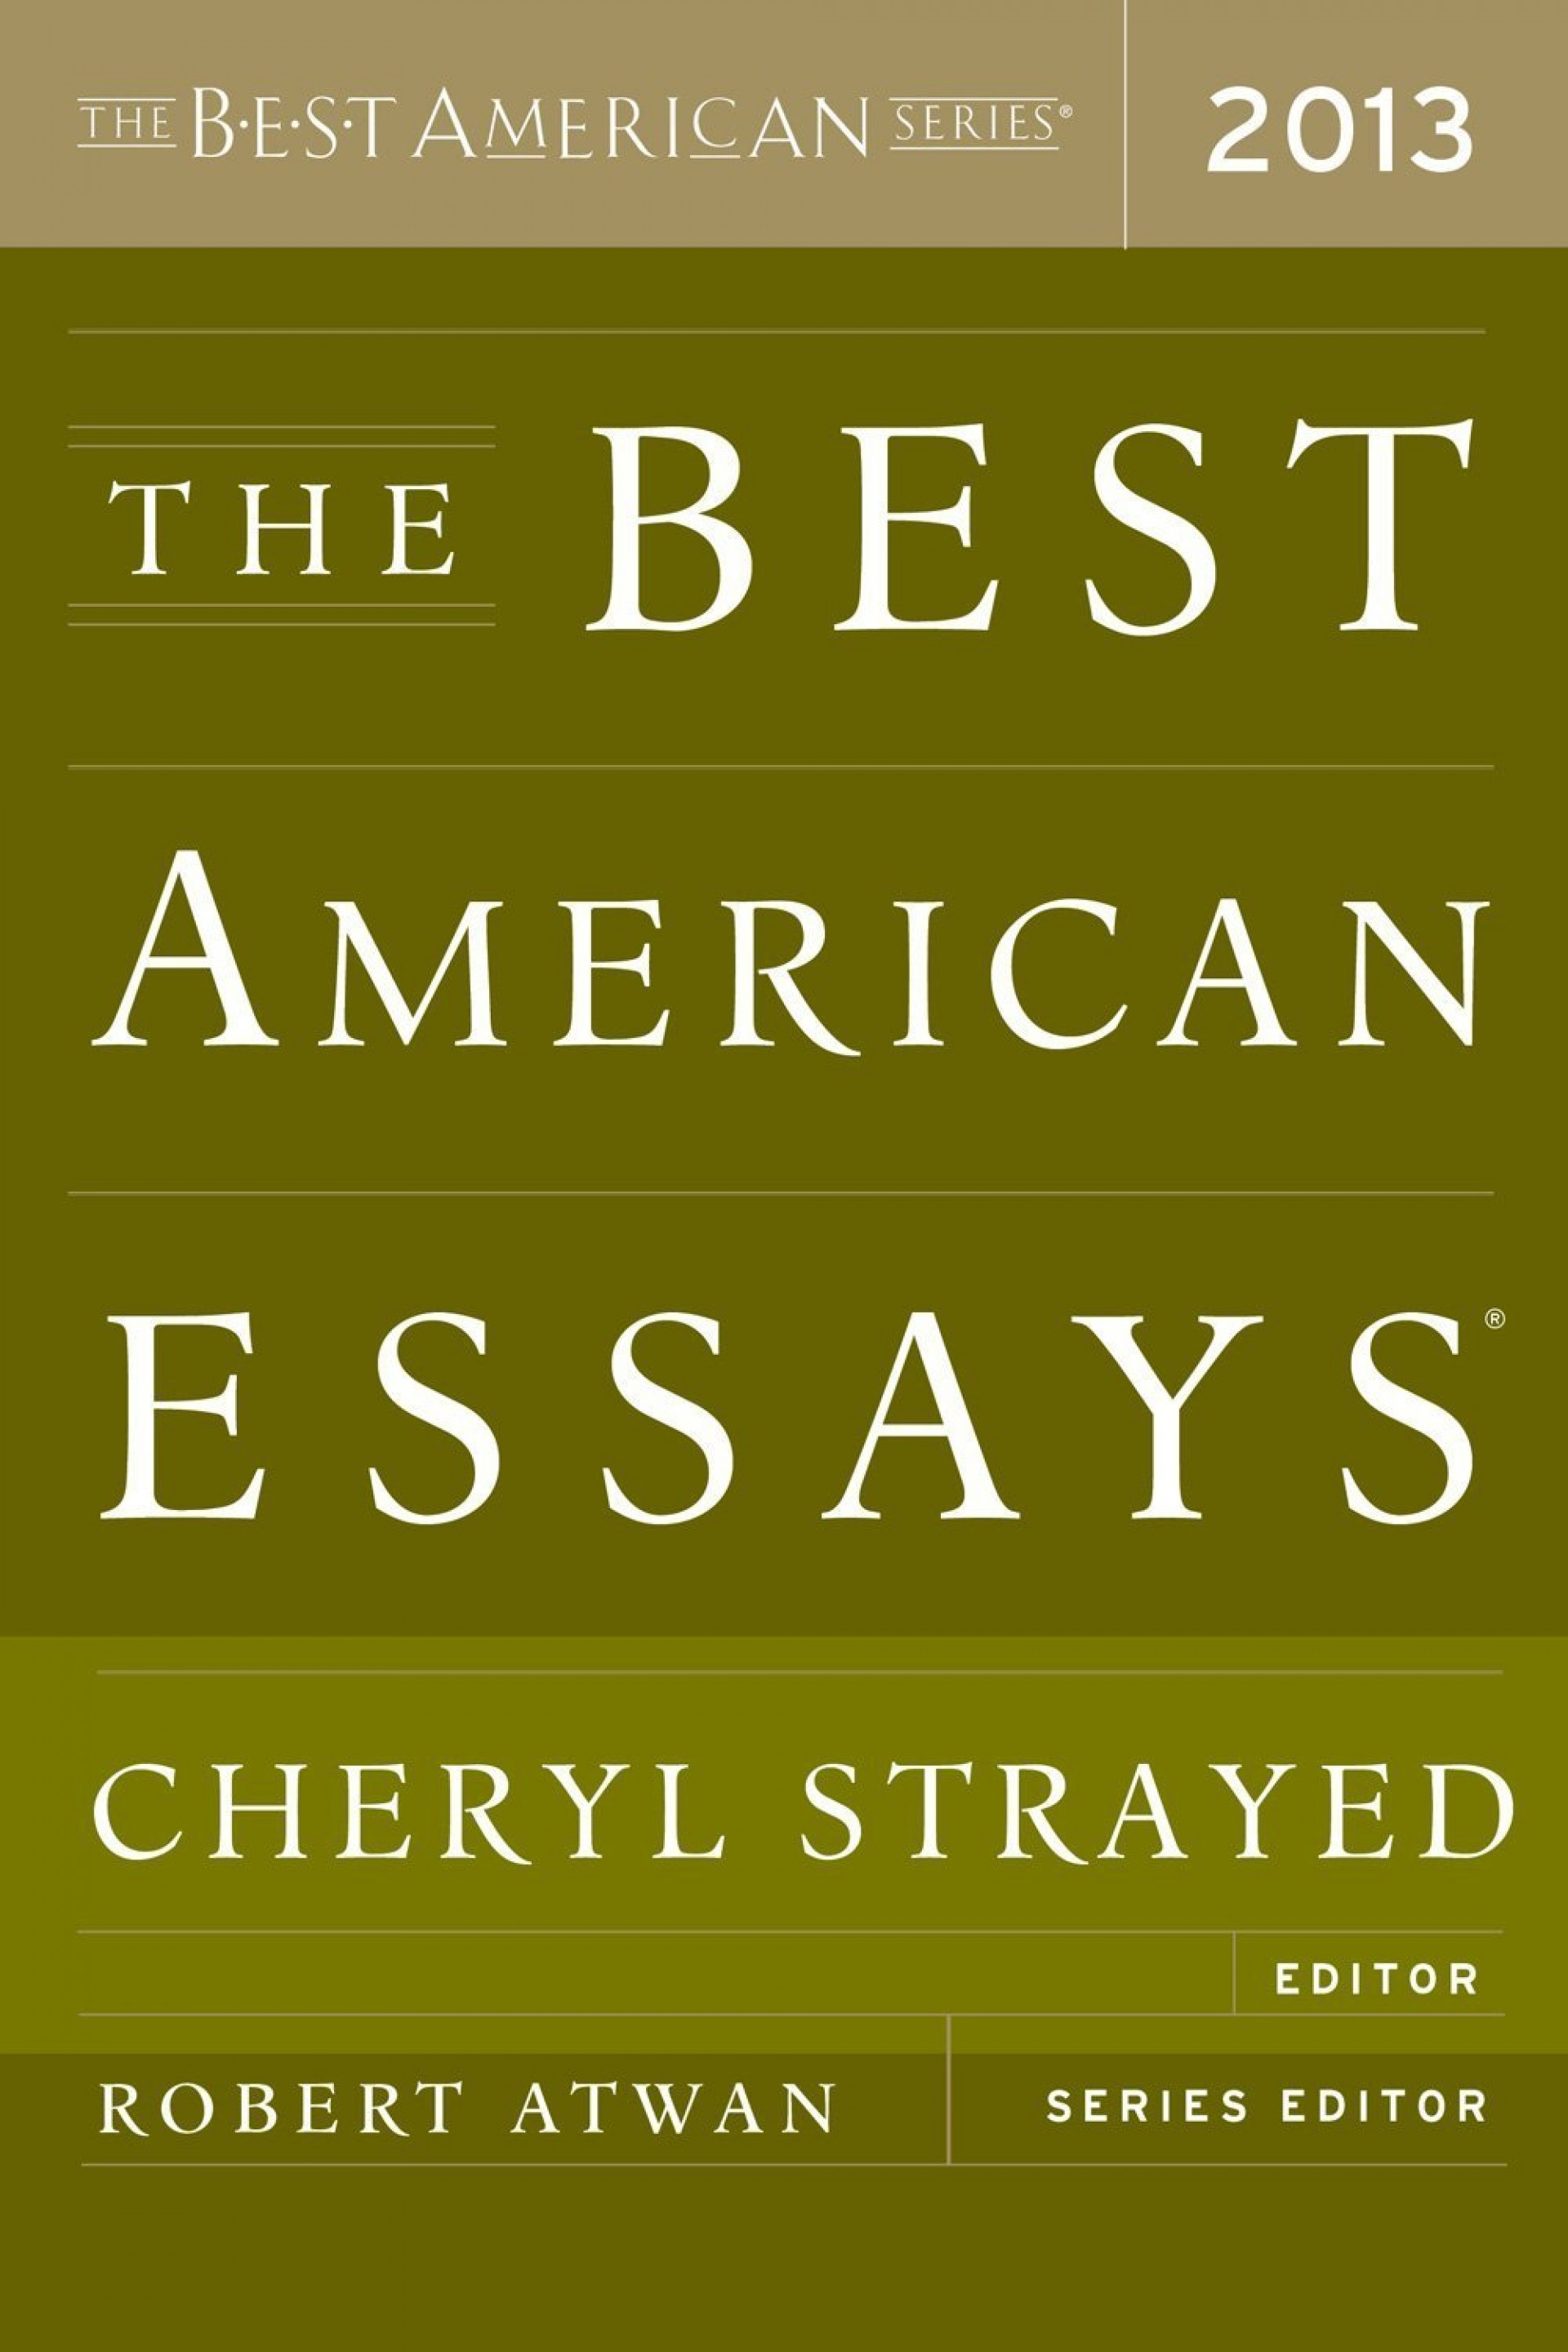 004 The Best American Essays Essay Wonderful Of Century Table Contents 2013 Pdf Download 1920